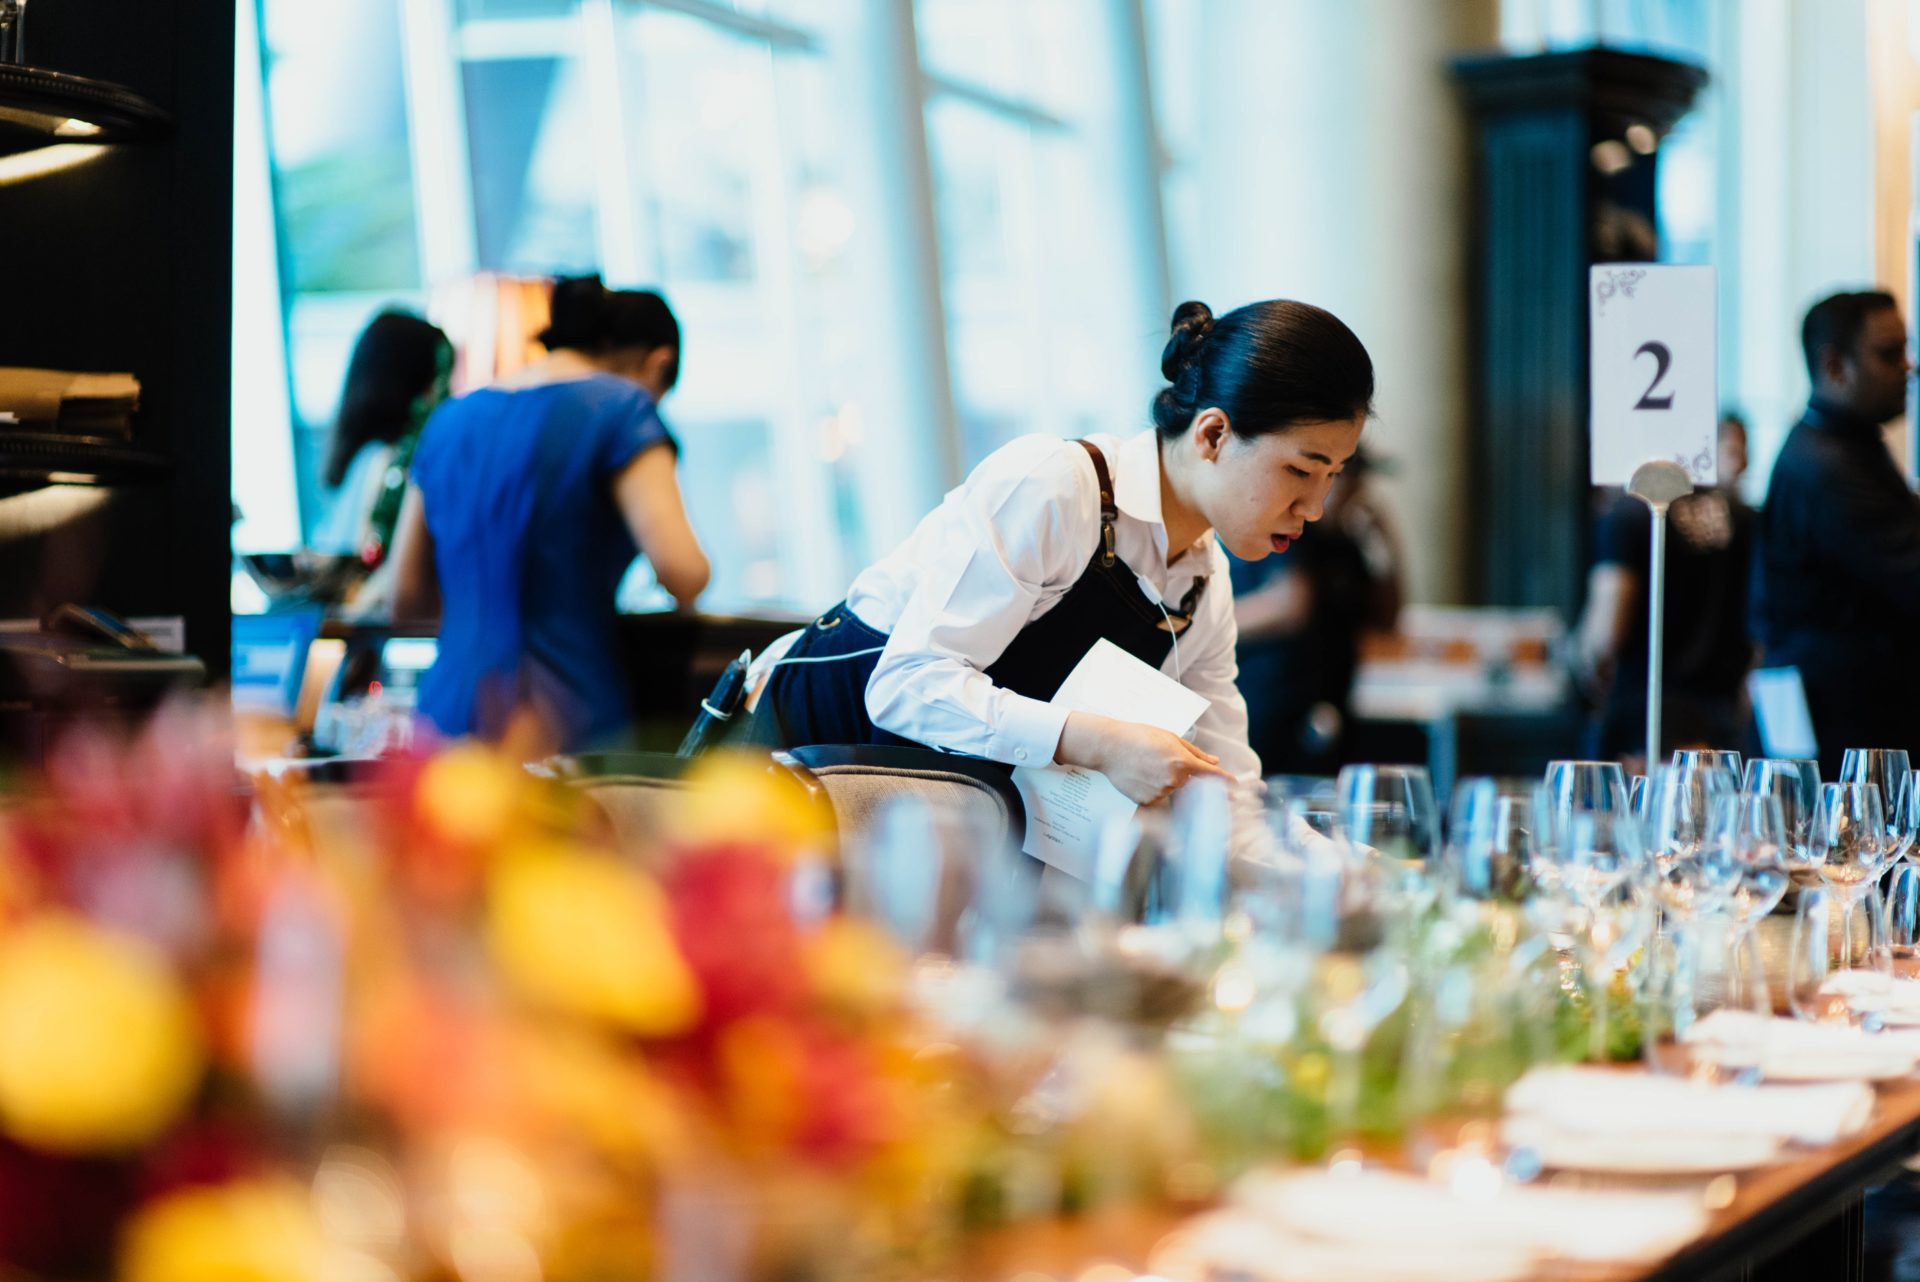 How to attract event sponsors & attendees